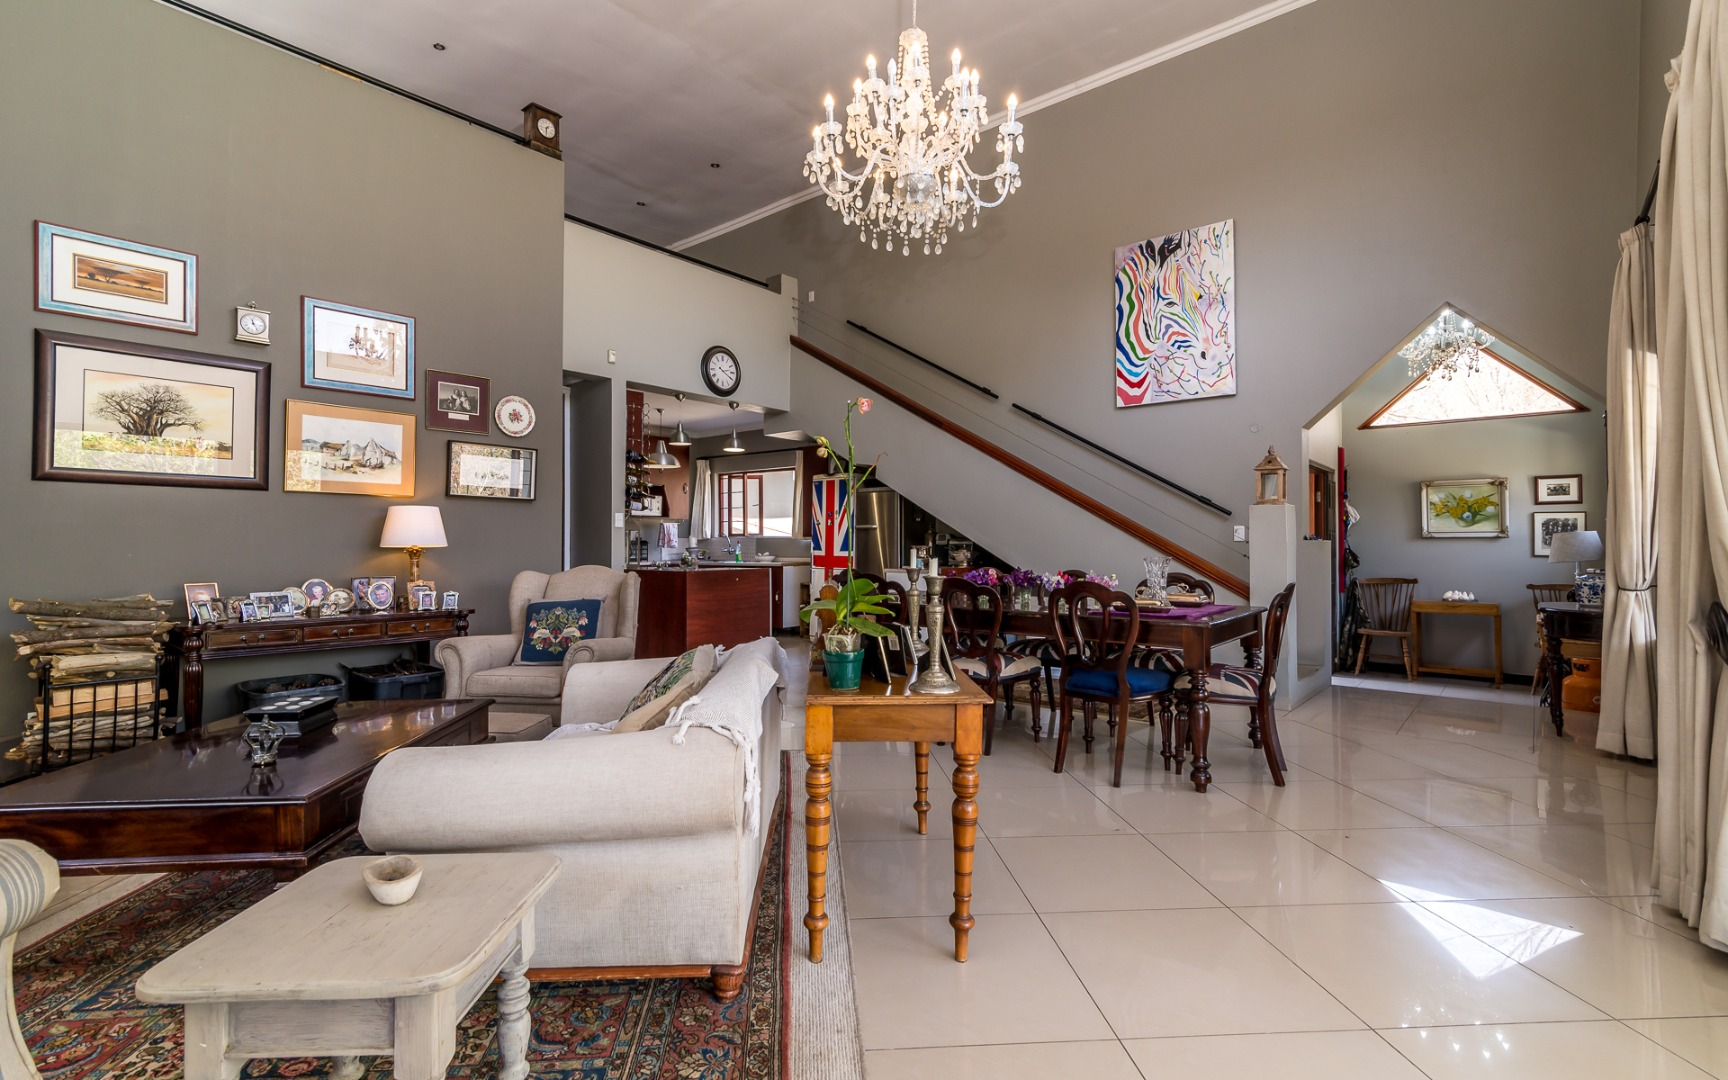 24 Bedroom House For Sale in Chartwell